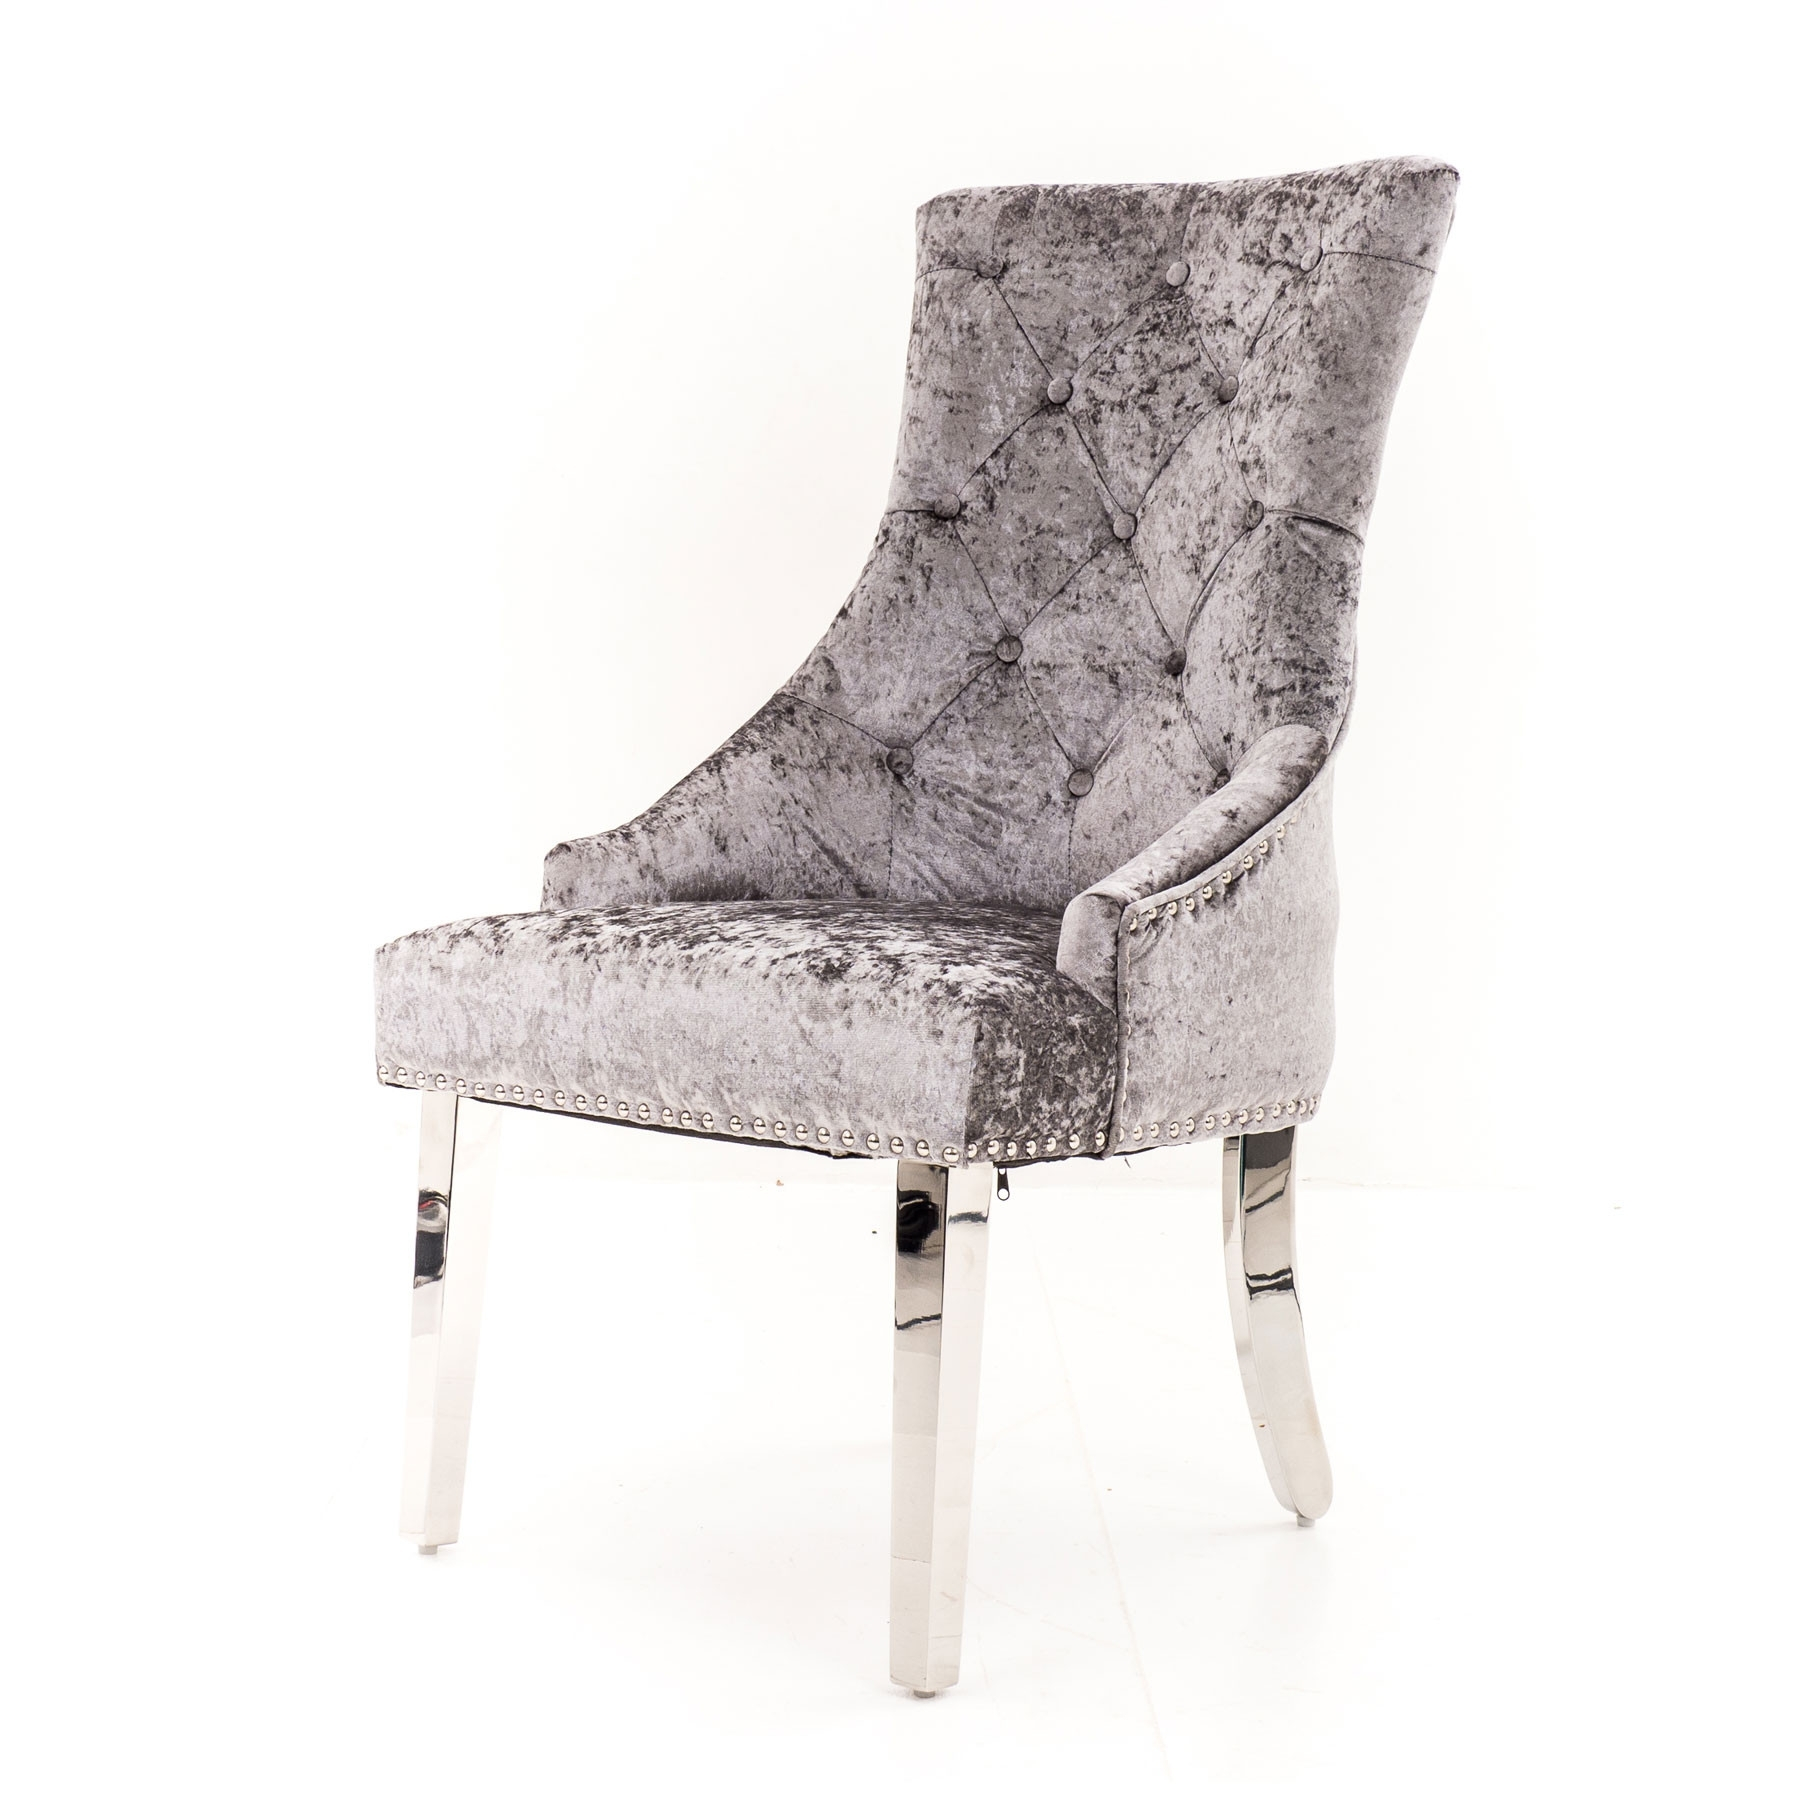 Best And Newest Velvet Dining Chairs Intended For Lyon Silver Velvet Dining Chair With Lion Knocker And Chrome Legs (View 12 of 25)